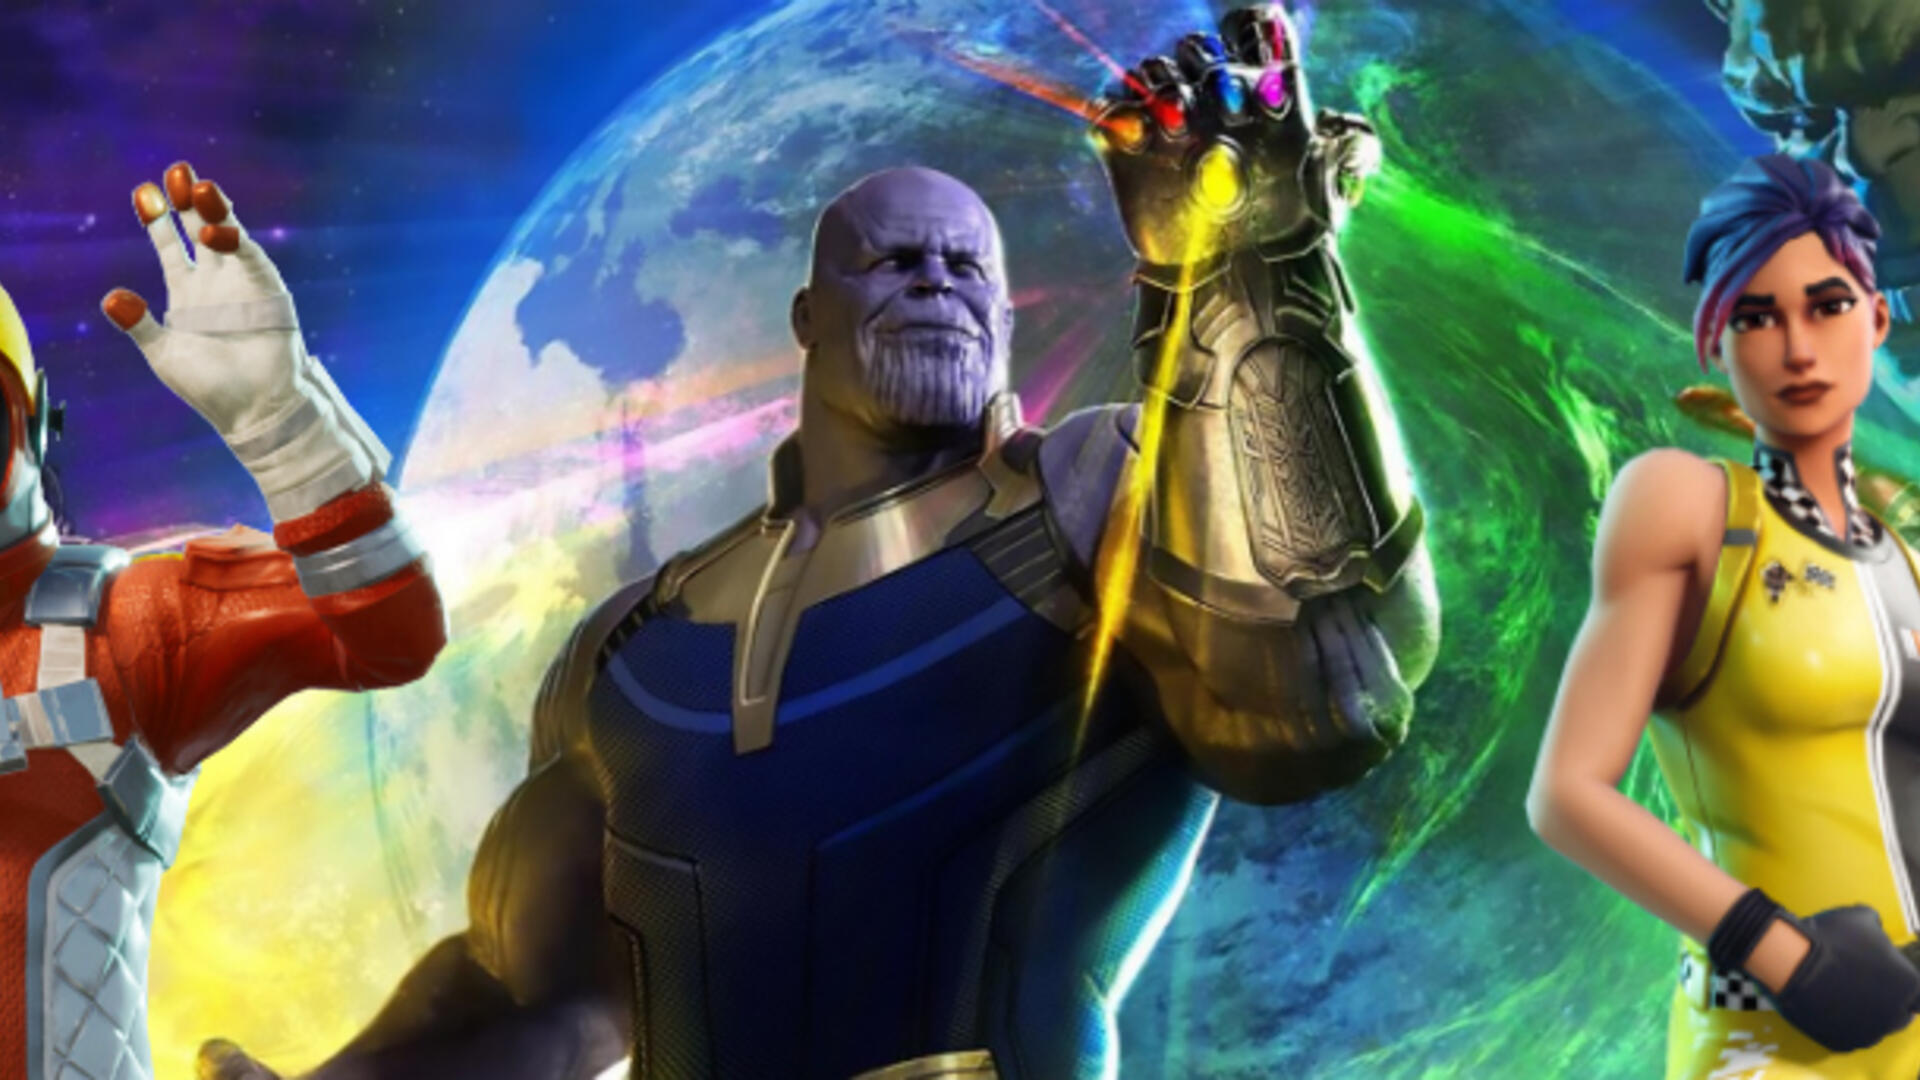 Fortnite Battle Royale Adds Infinity War's Thanos in Limited Time Mode